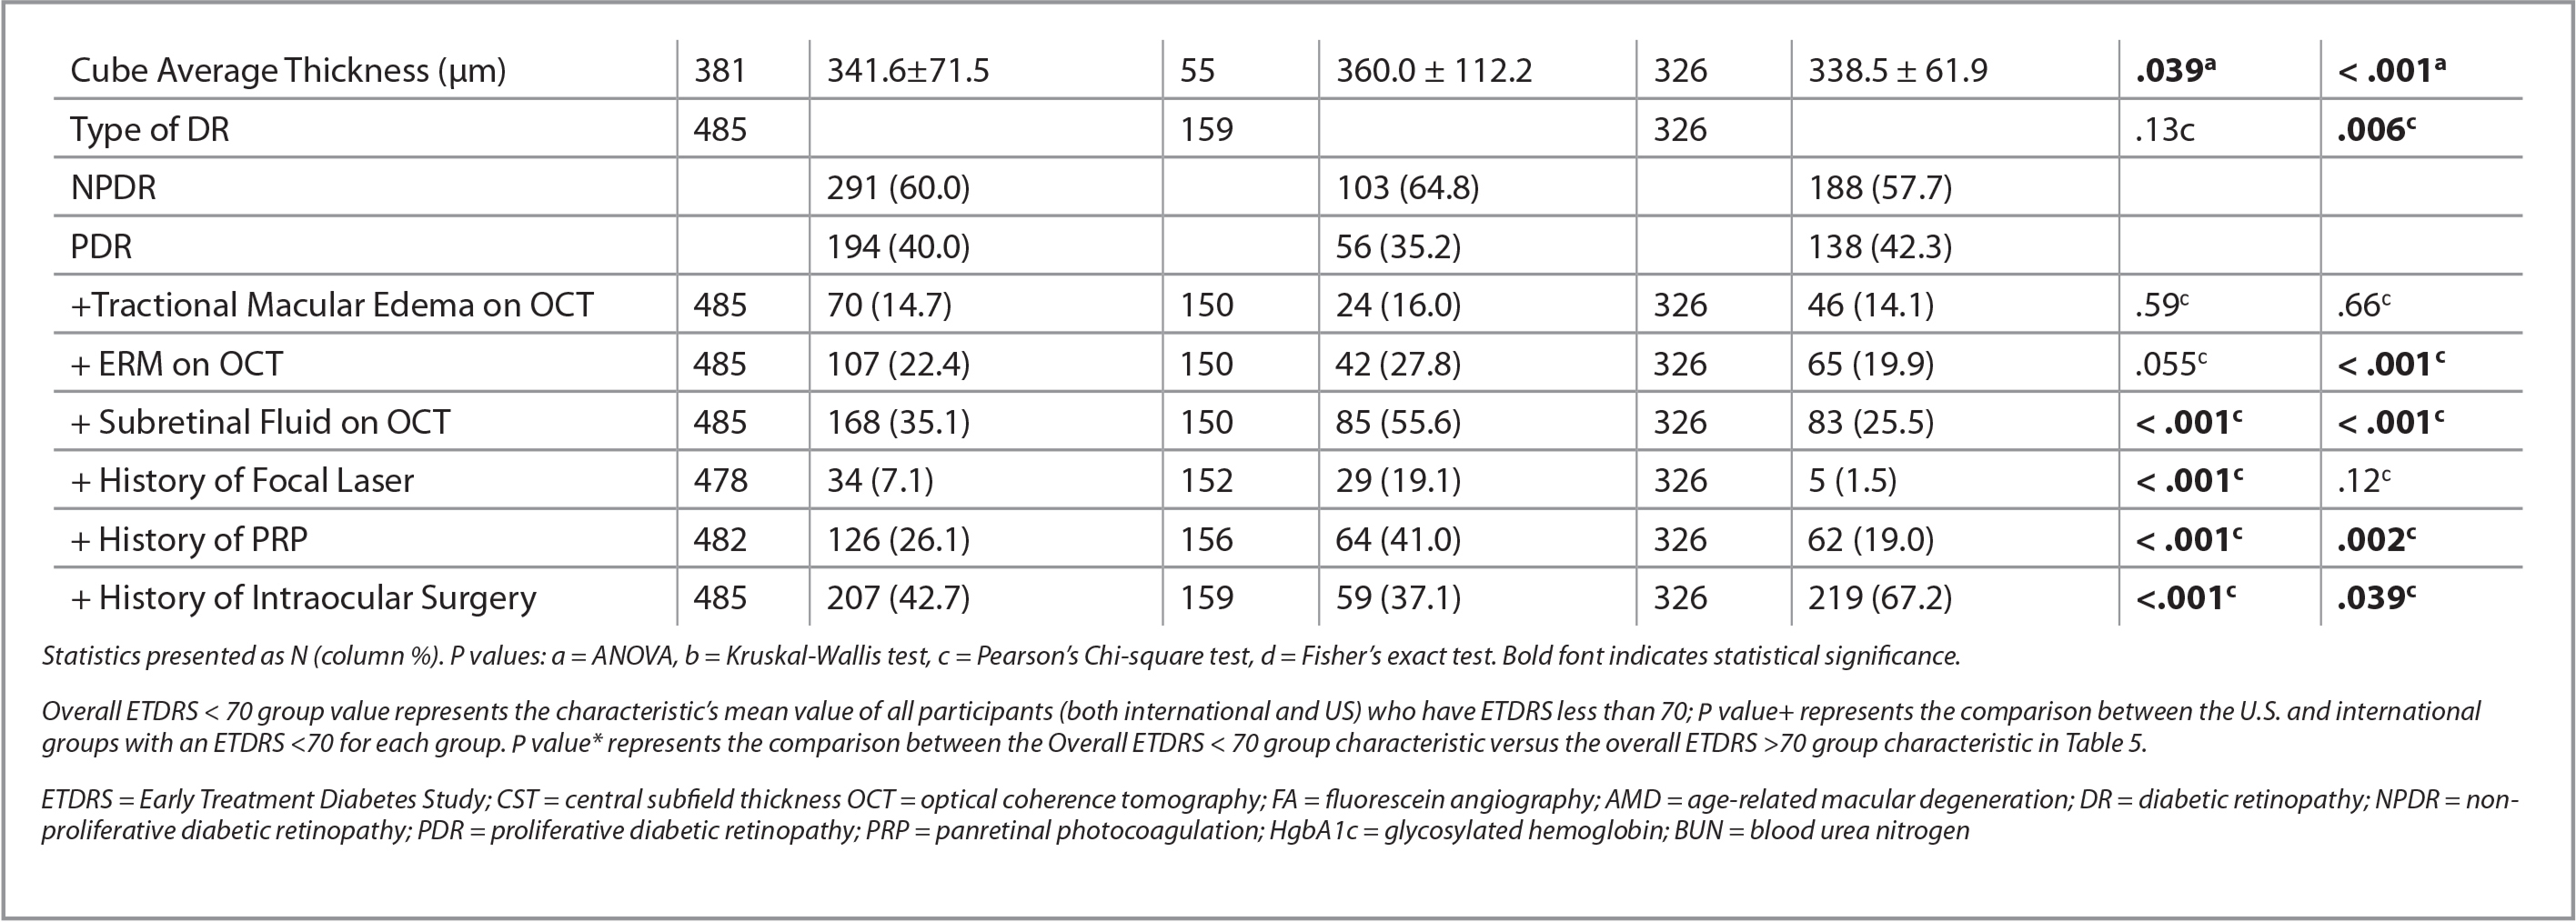 Summaries and Comparisons by Site are Shown Below for Patients With ETDRS ≤ 70